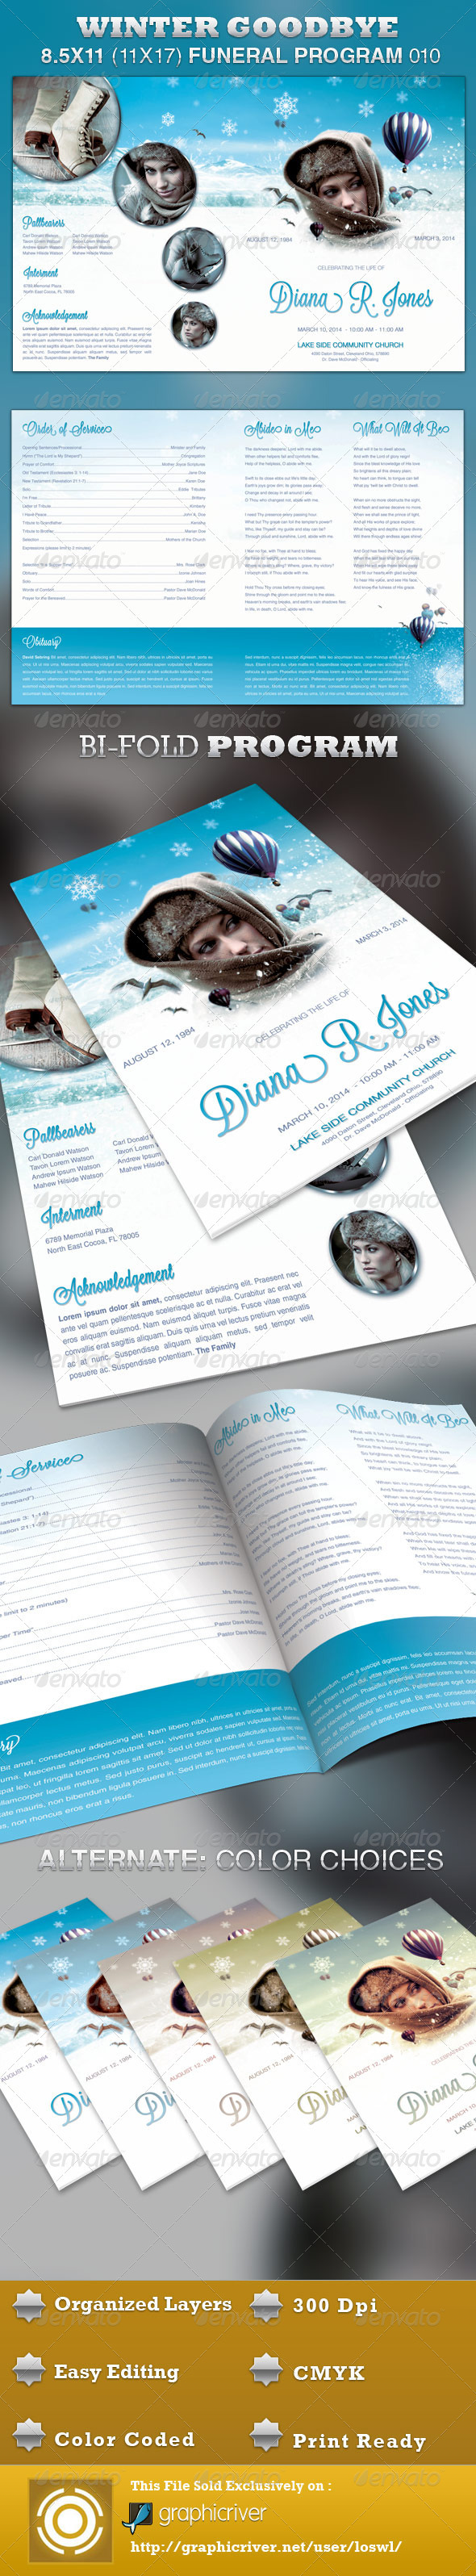 Winter Goodbye Funeral Program Template 010 By Loswl GraphicRiver